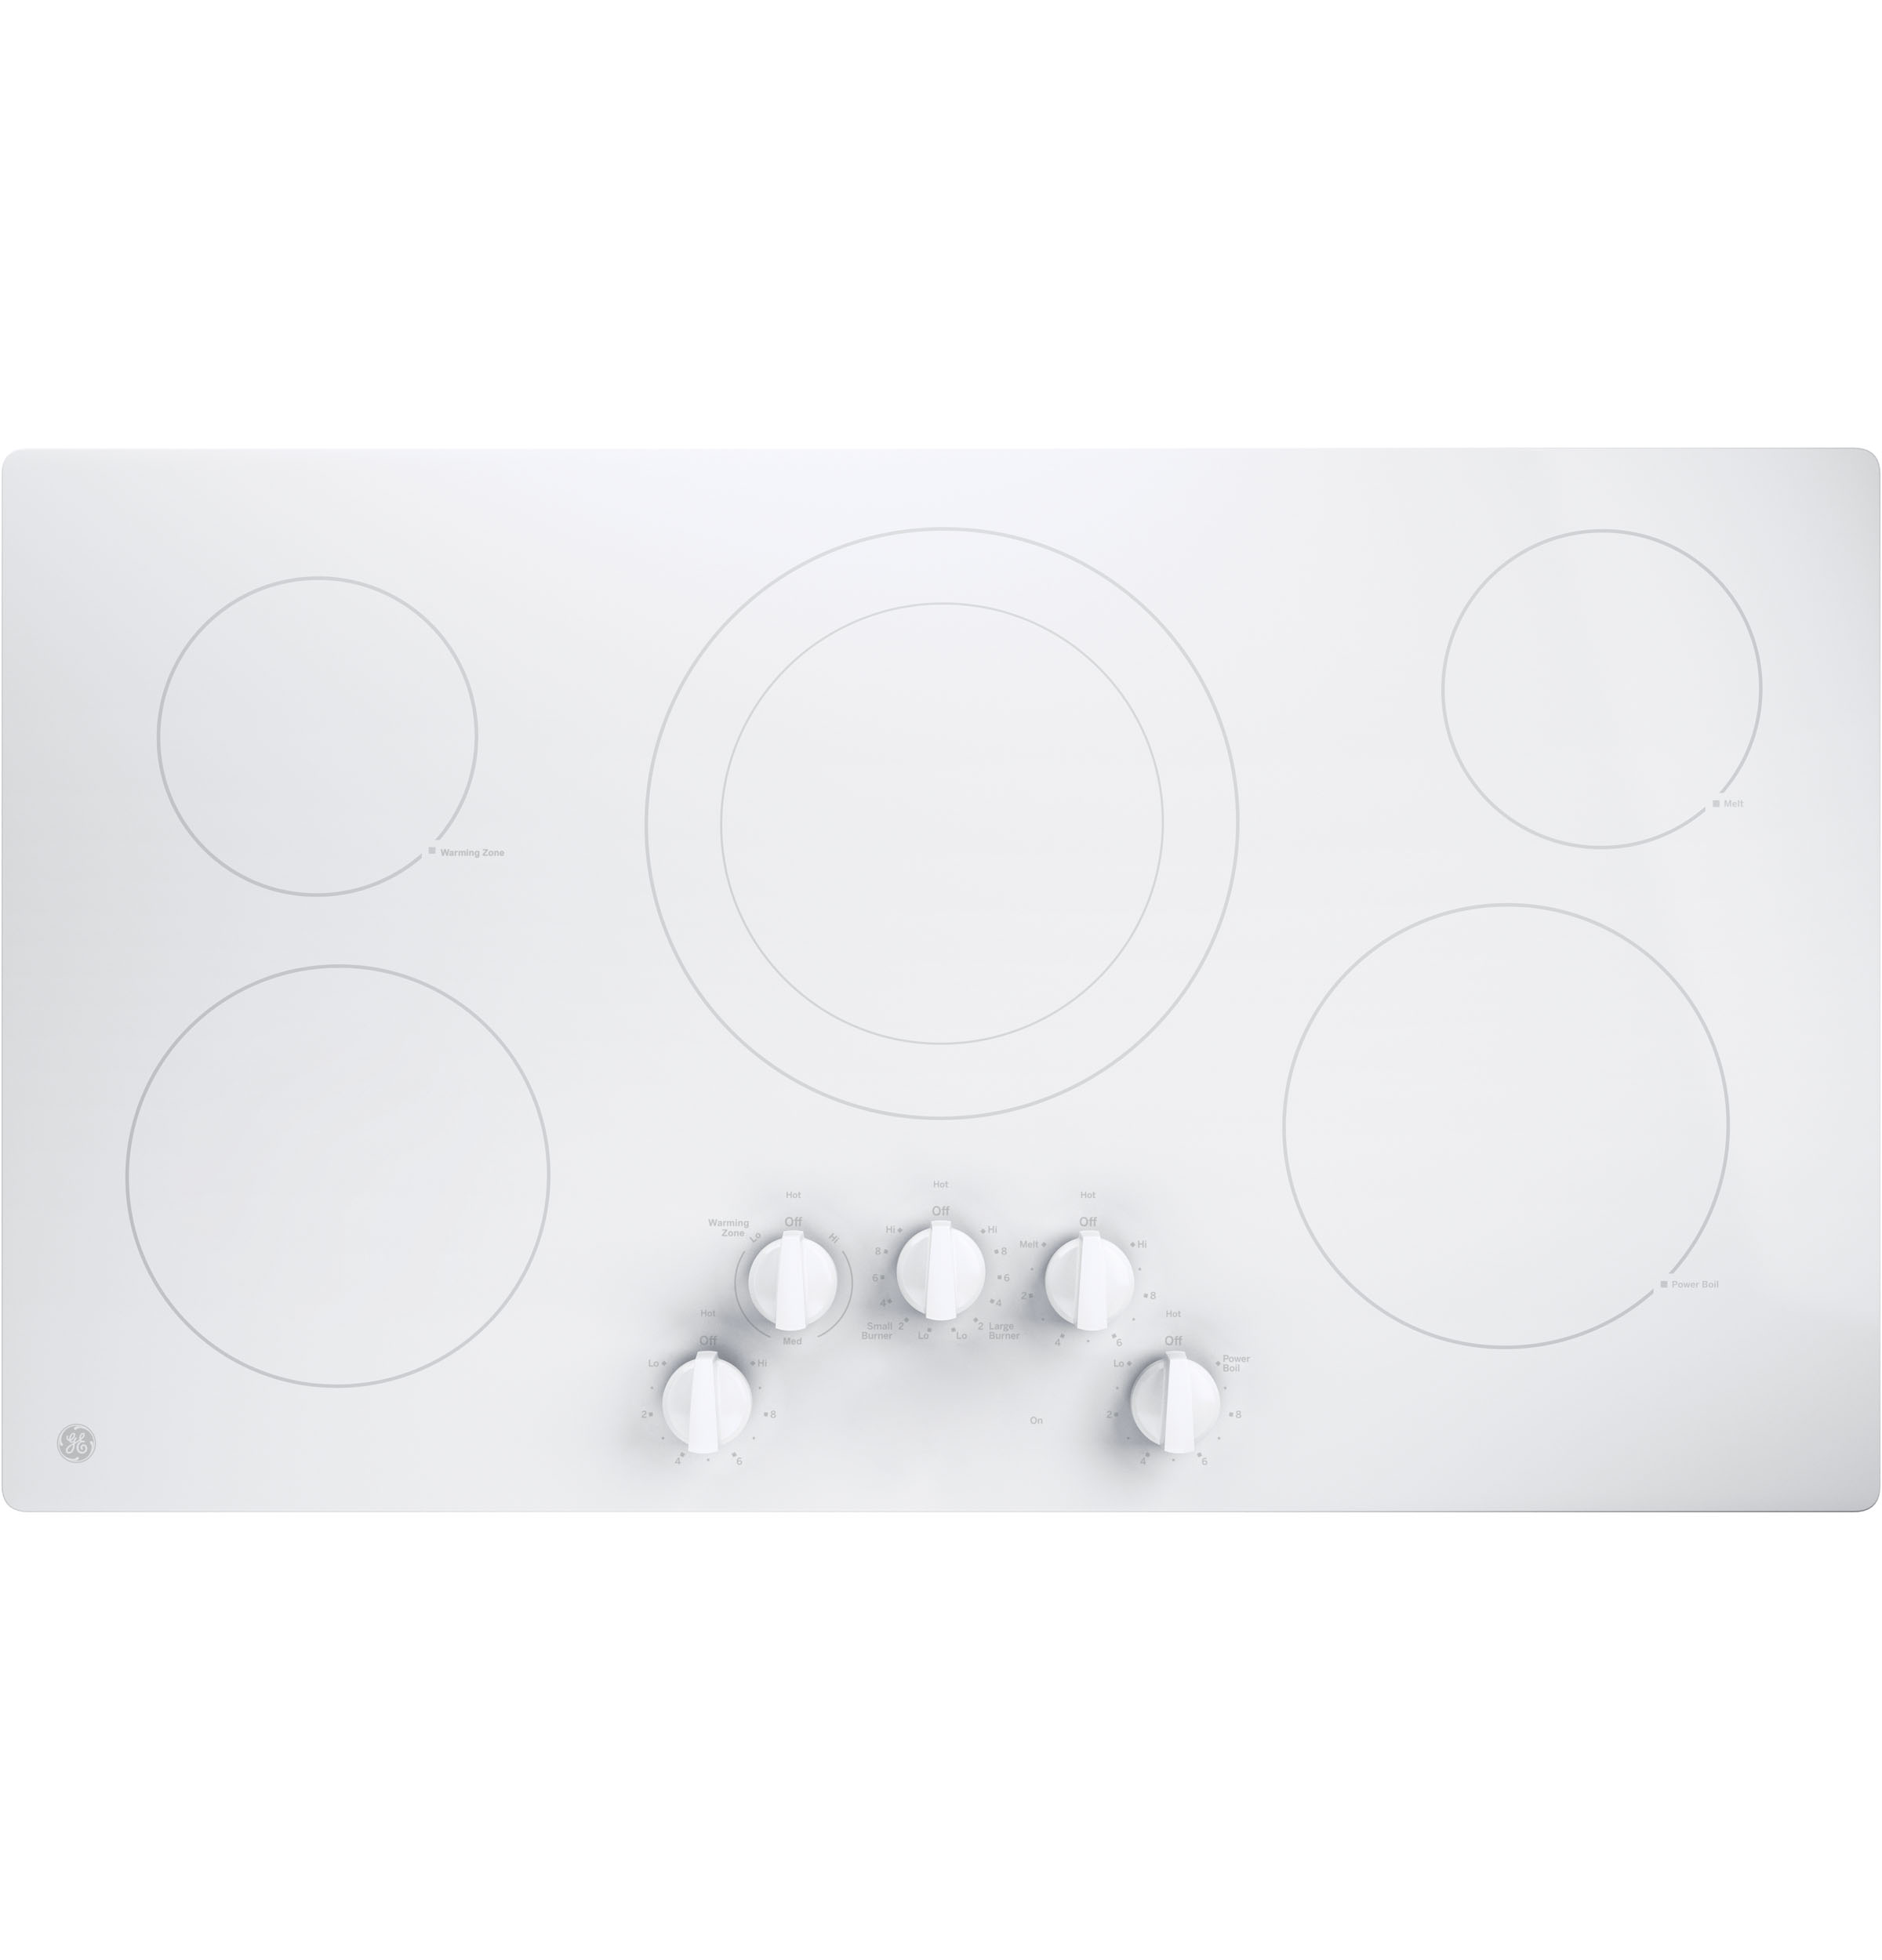 "Model: JP3036TLWW | GE GE® 36"" Built-In Knob Control Electric Cooktop"